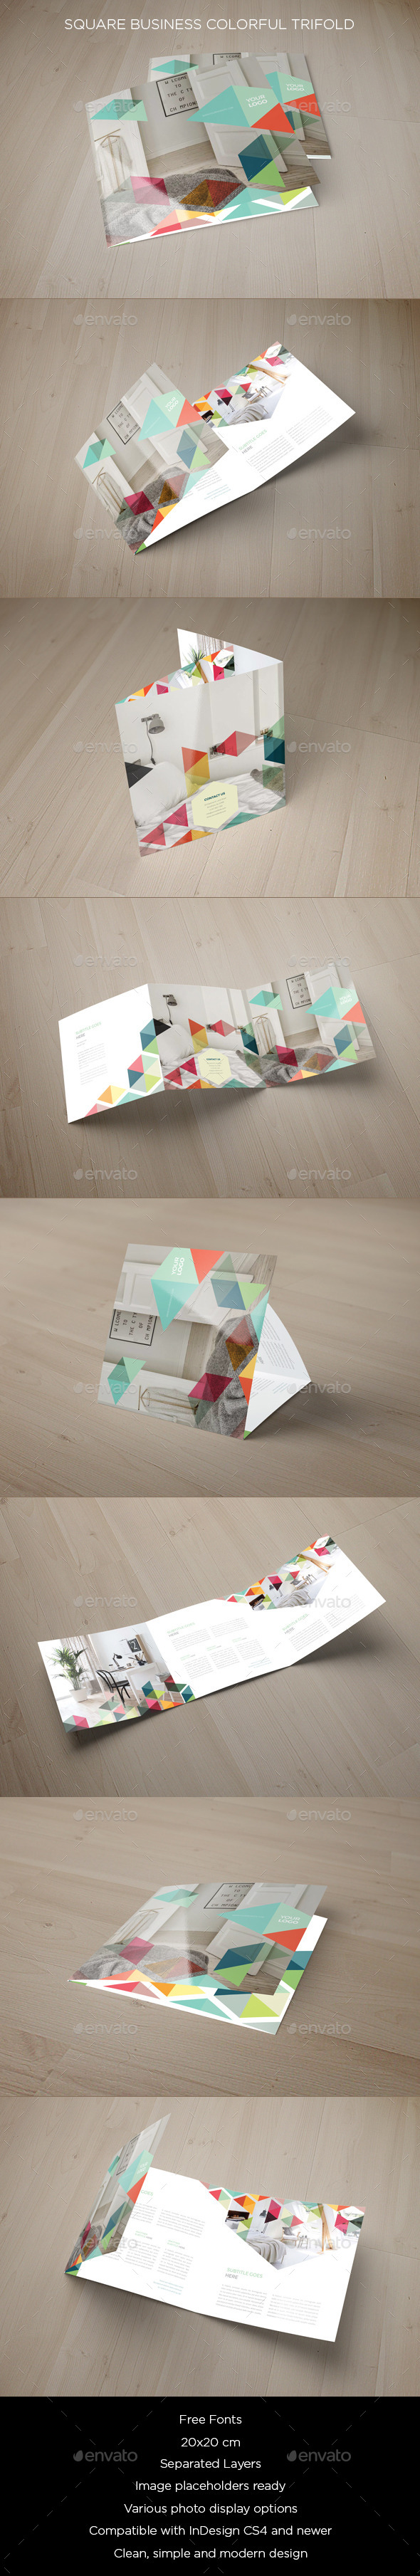 Square Business Colorful Trifold